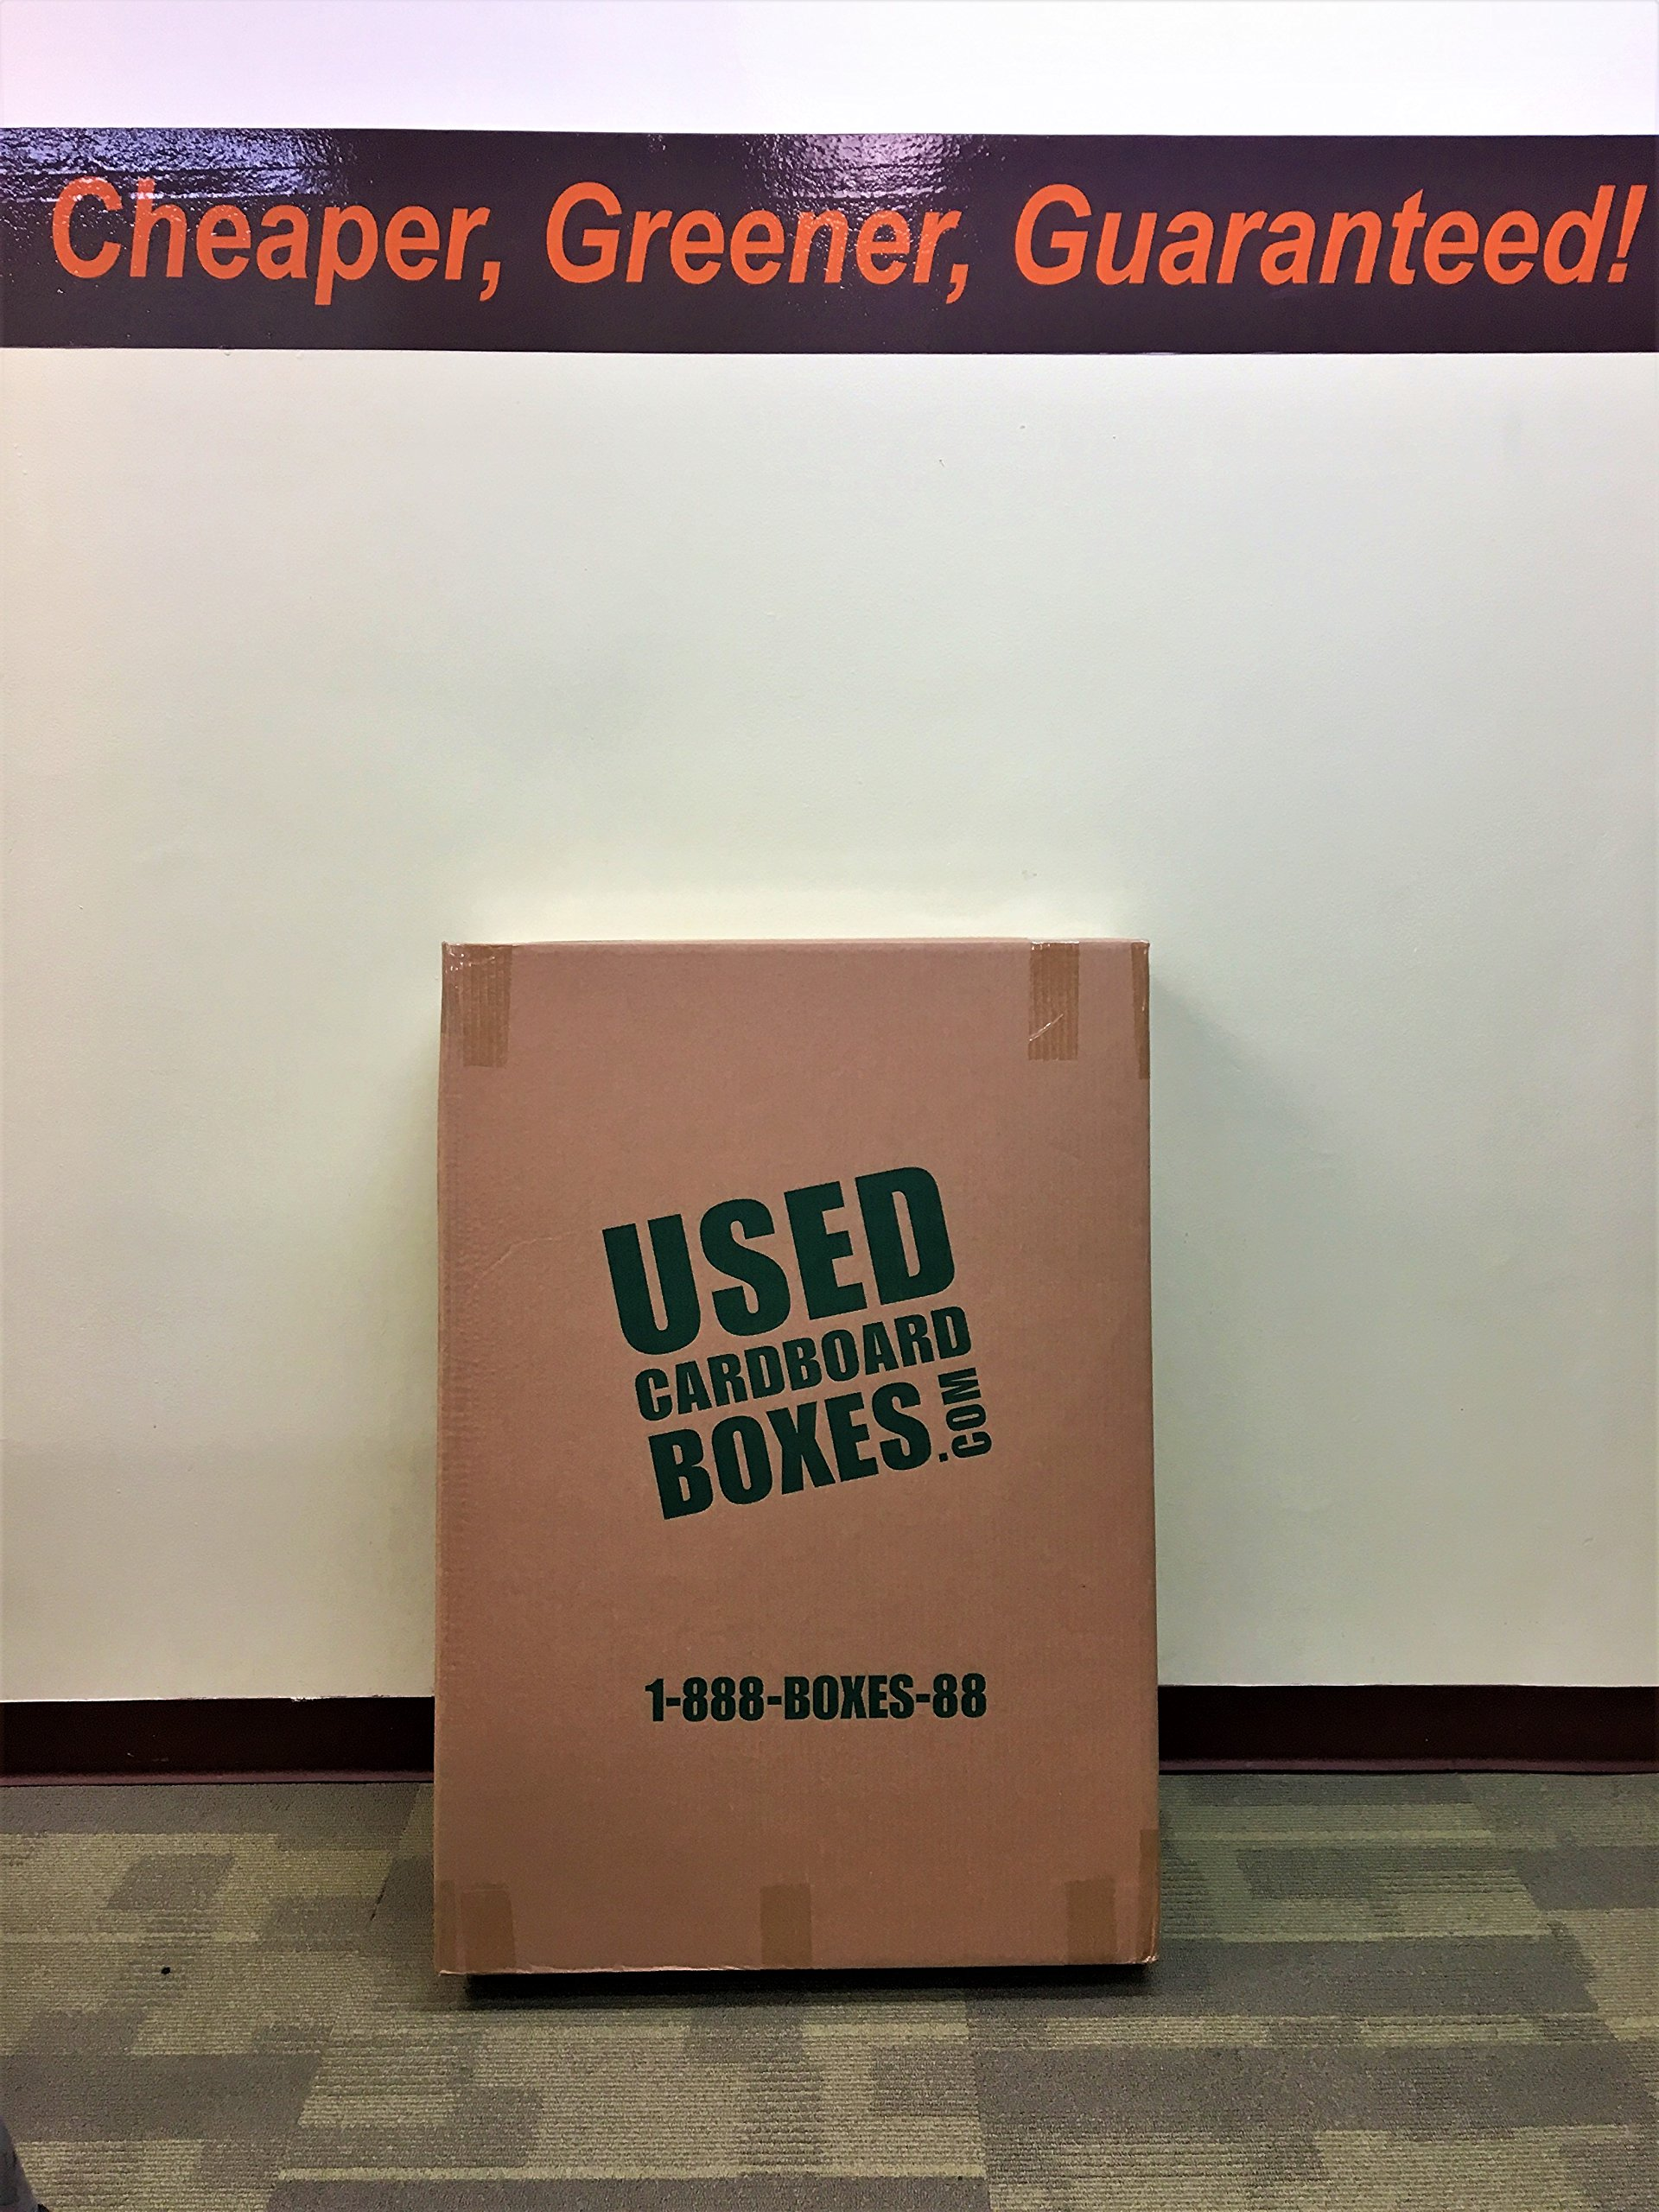 3 Bedroom/Office Moving Kit w/ 68 boxes - USEDCARDBOARDBOXES.COM by Used Cardboard Boxes, Inc.